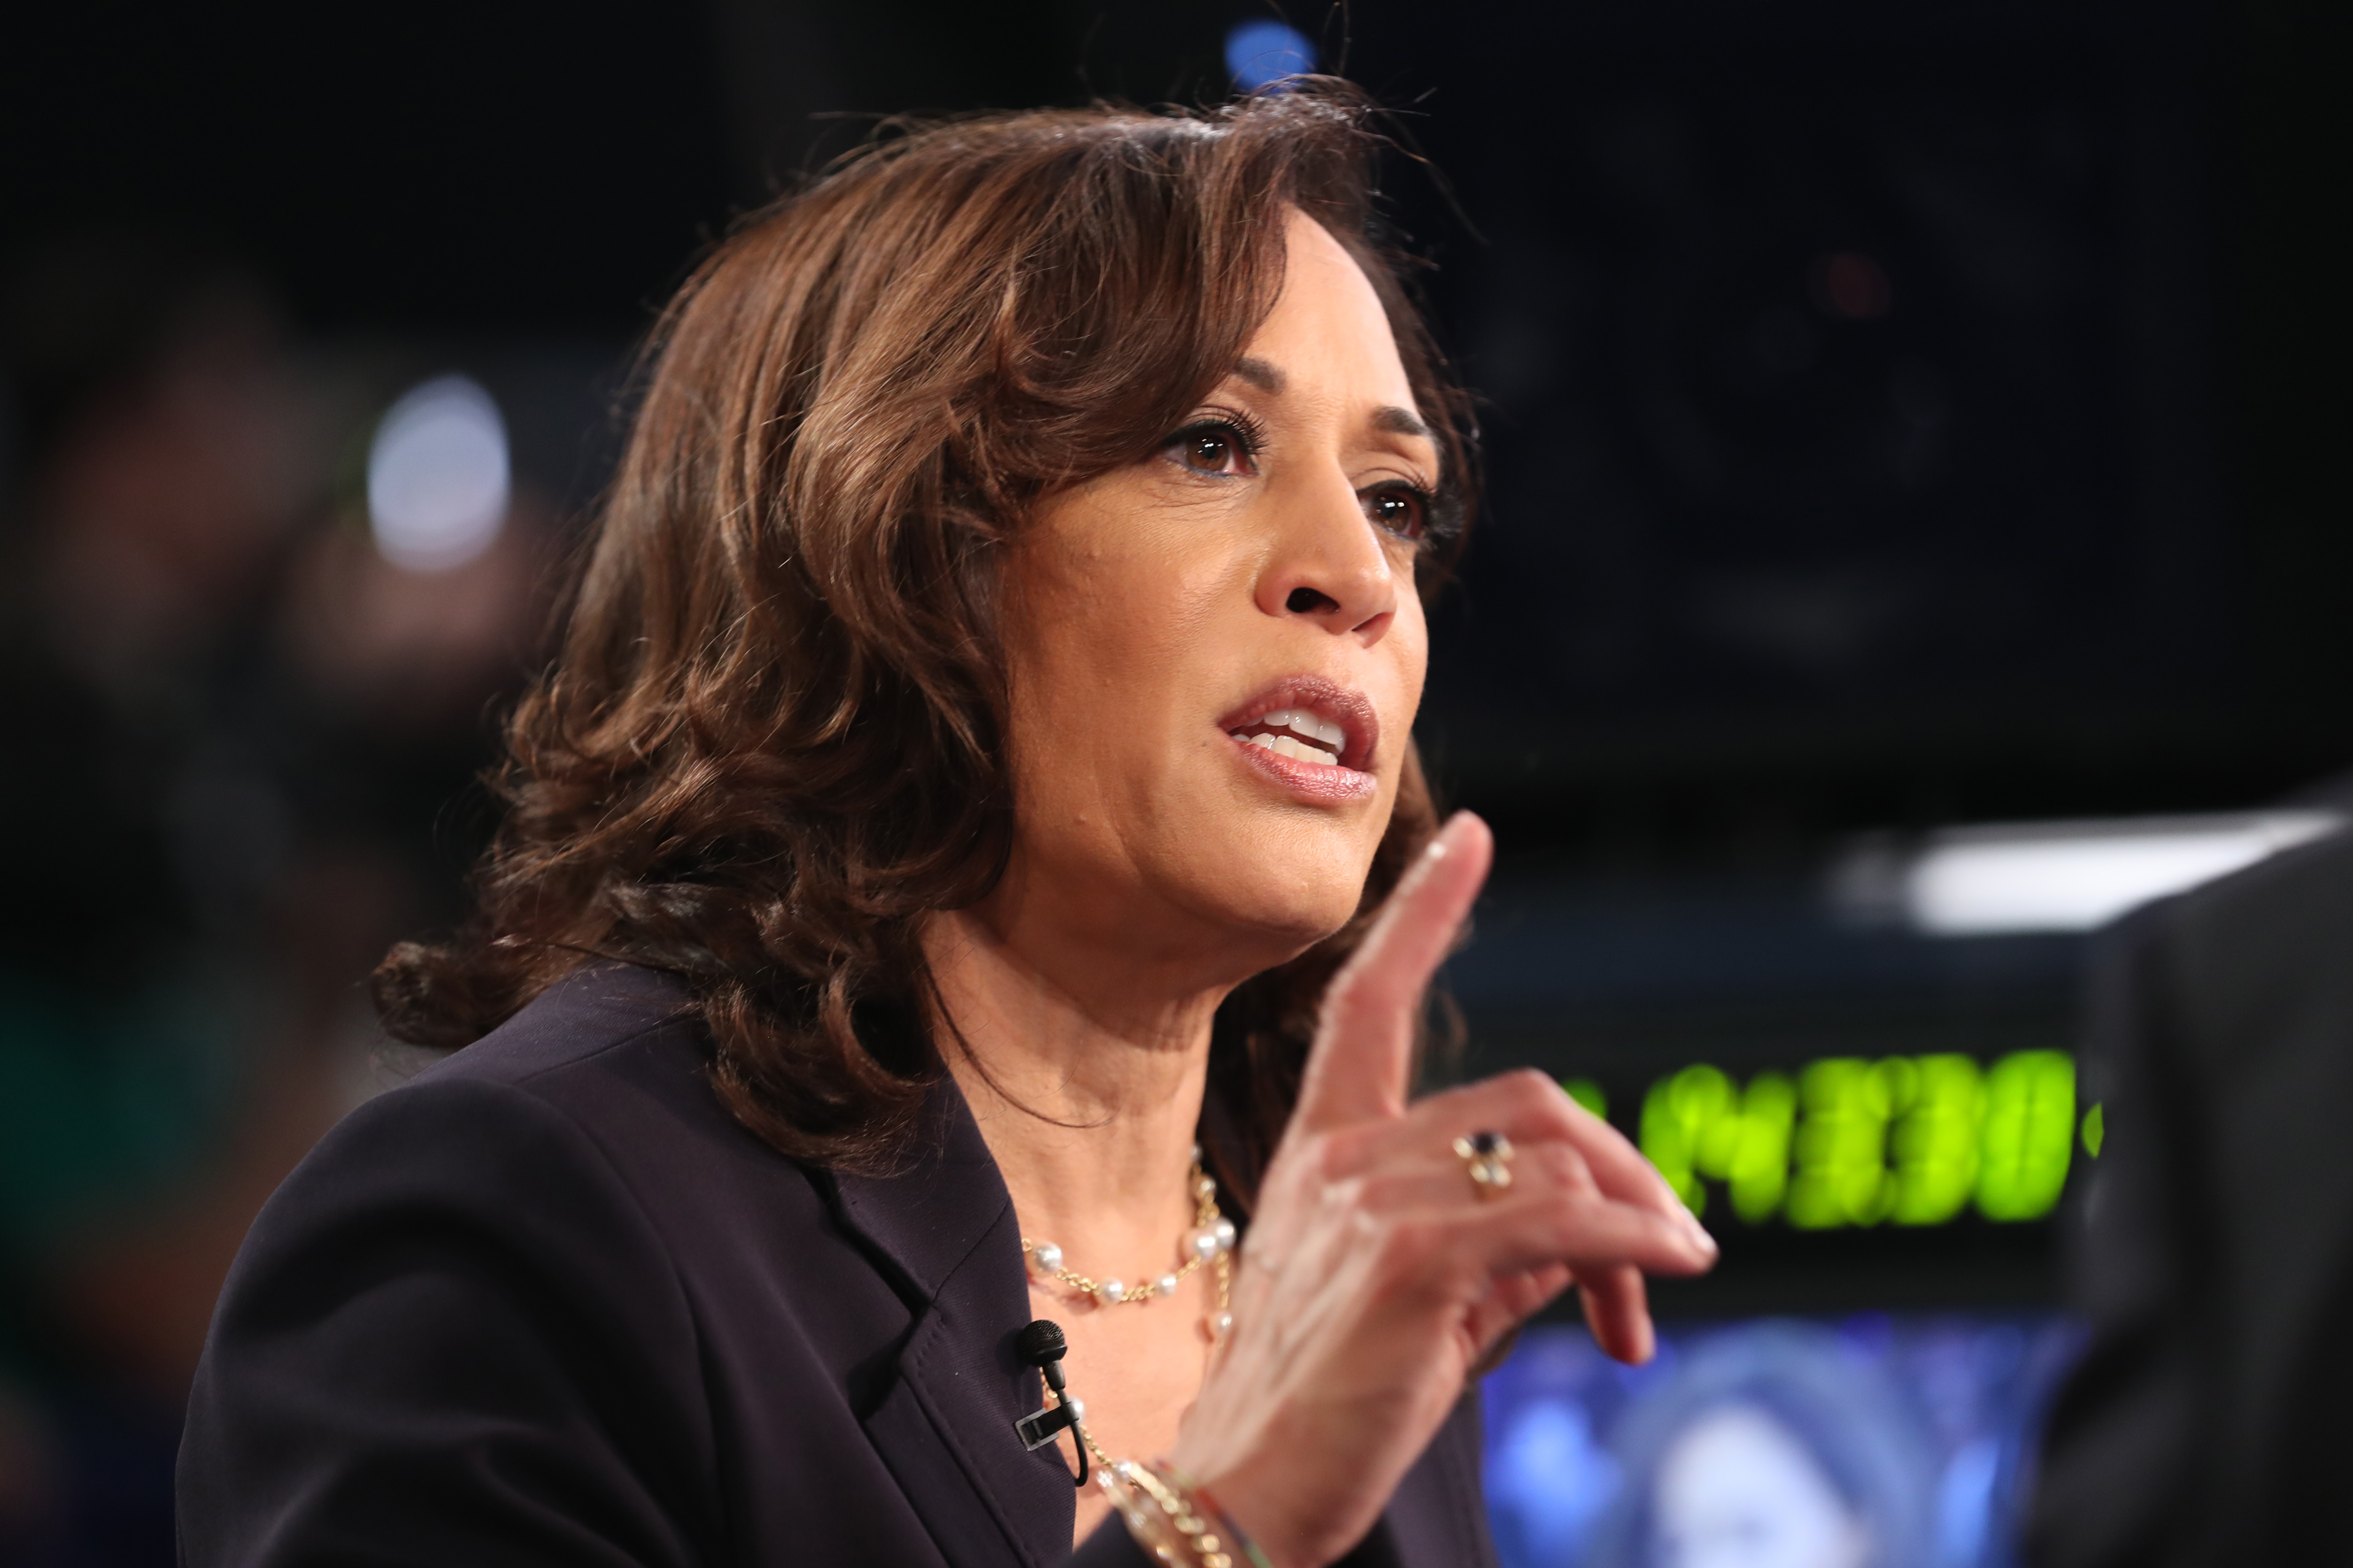 Democratic presidential candidate Sen. Kamala Harris (D-CA) speaks during a television interview after the second night of the first Democratic presidential debate on June 27, 2019 in Miami, Florida.